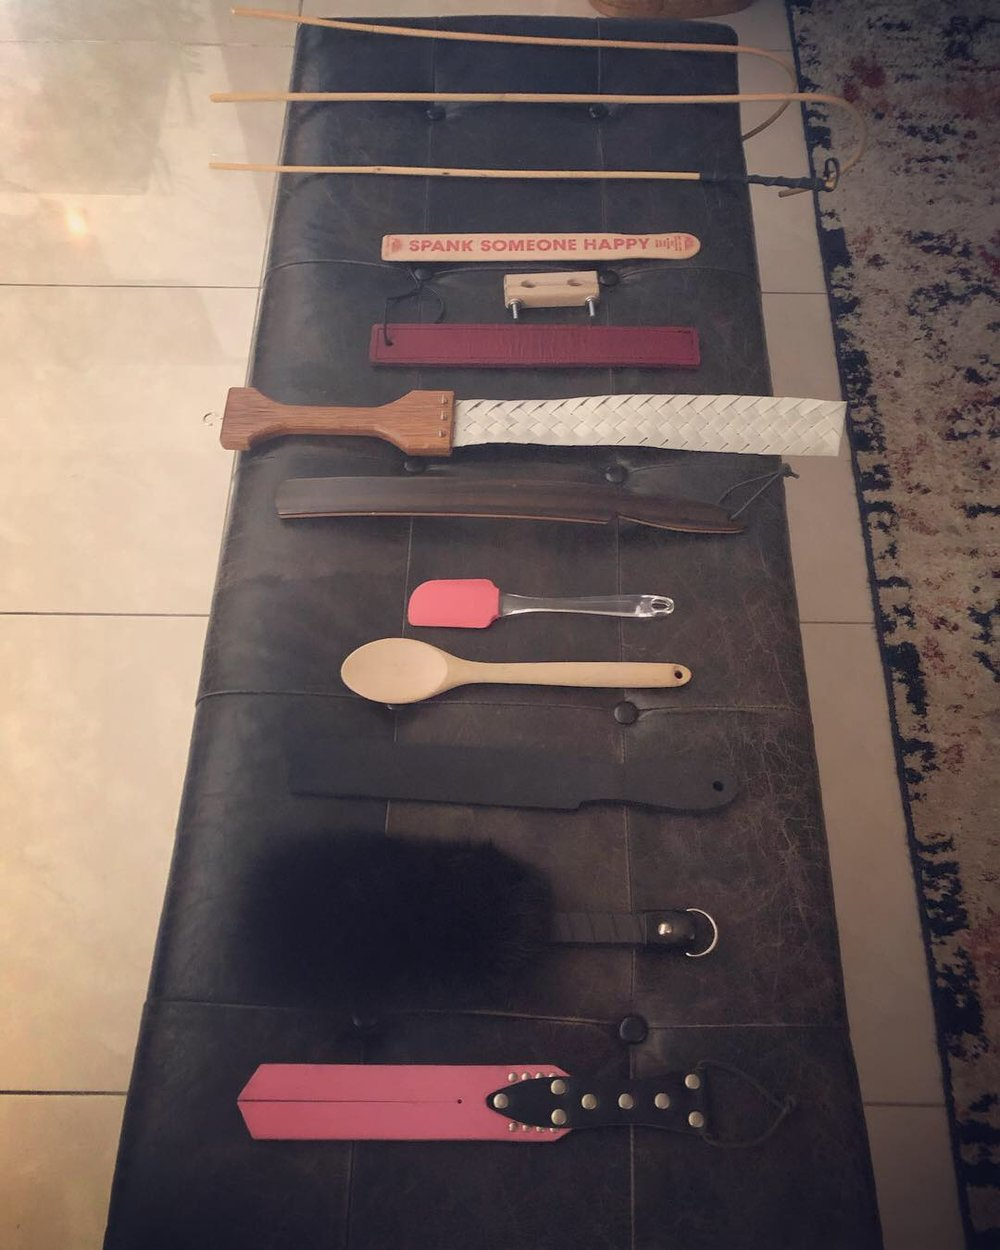 cane, caning, crop, paddle, tawse, ruler, crooked handle cane, restraints